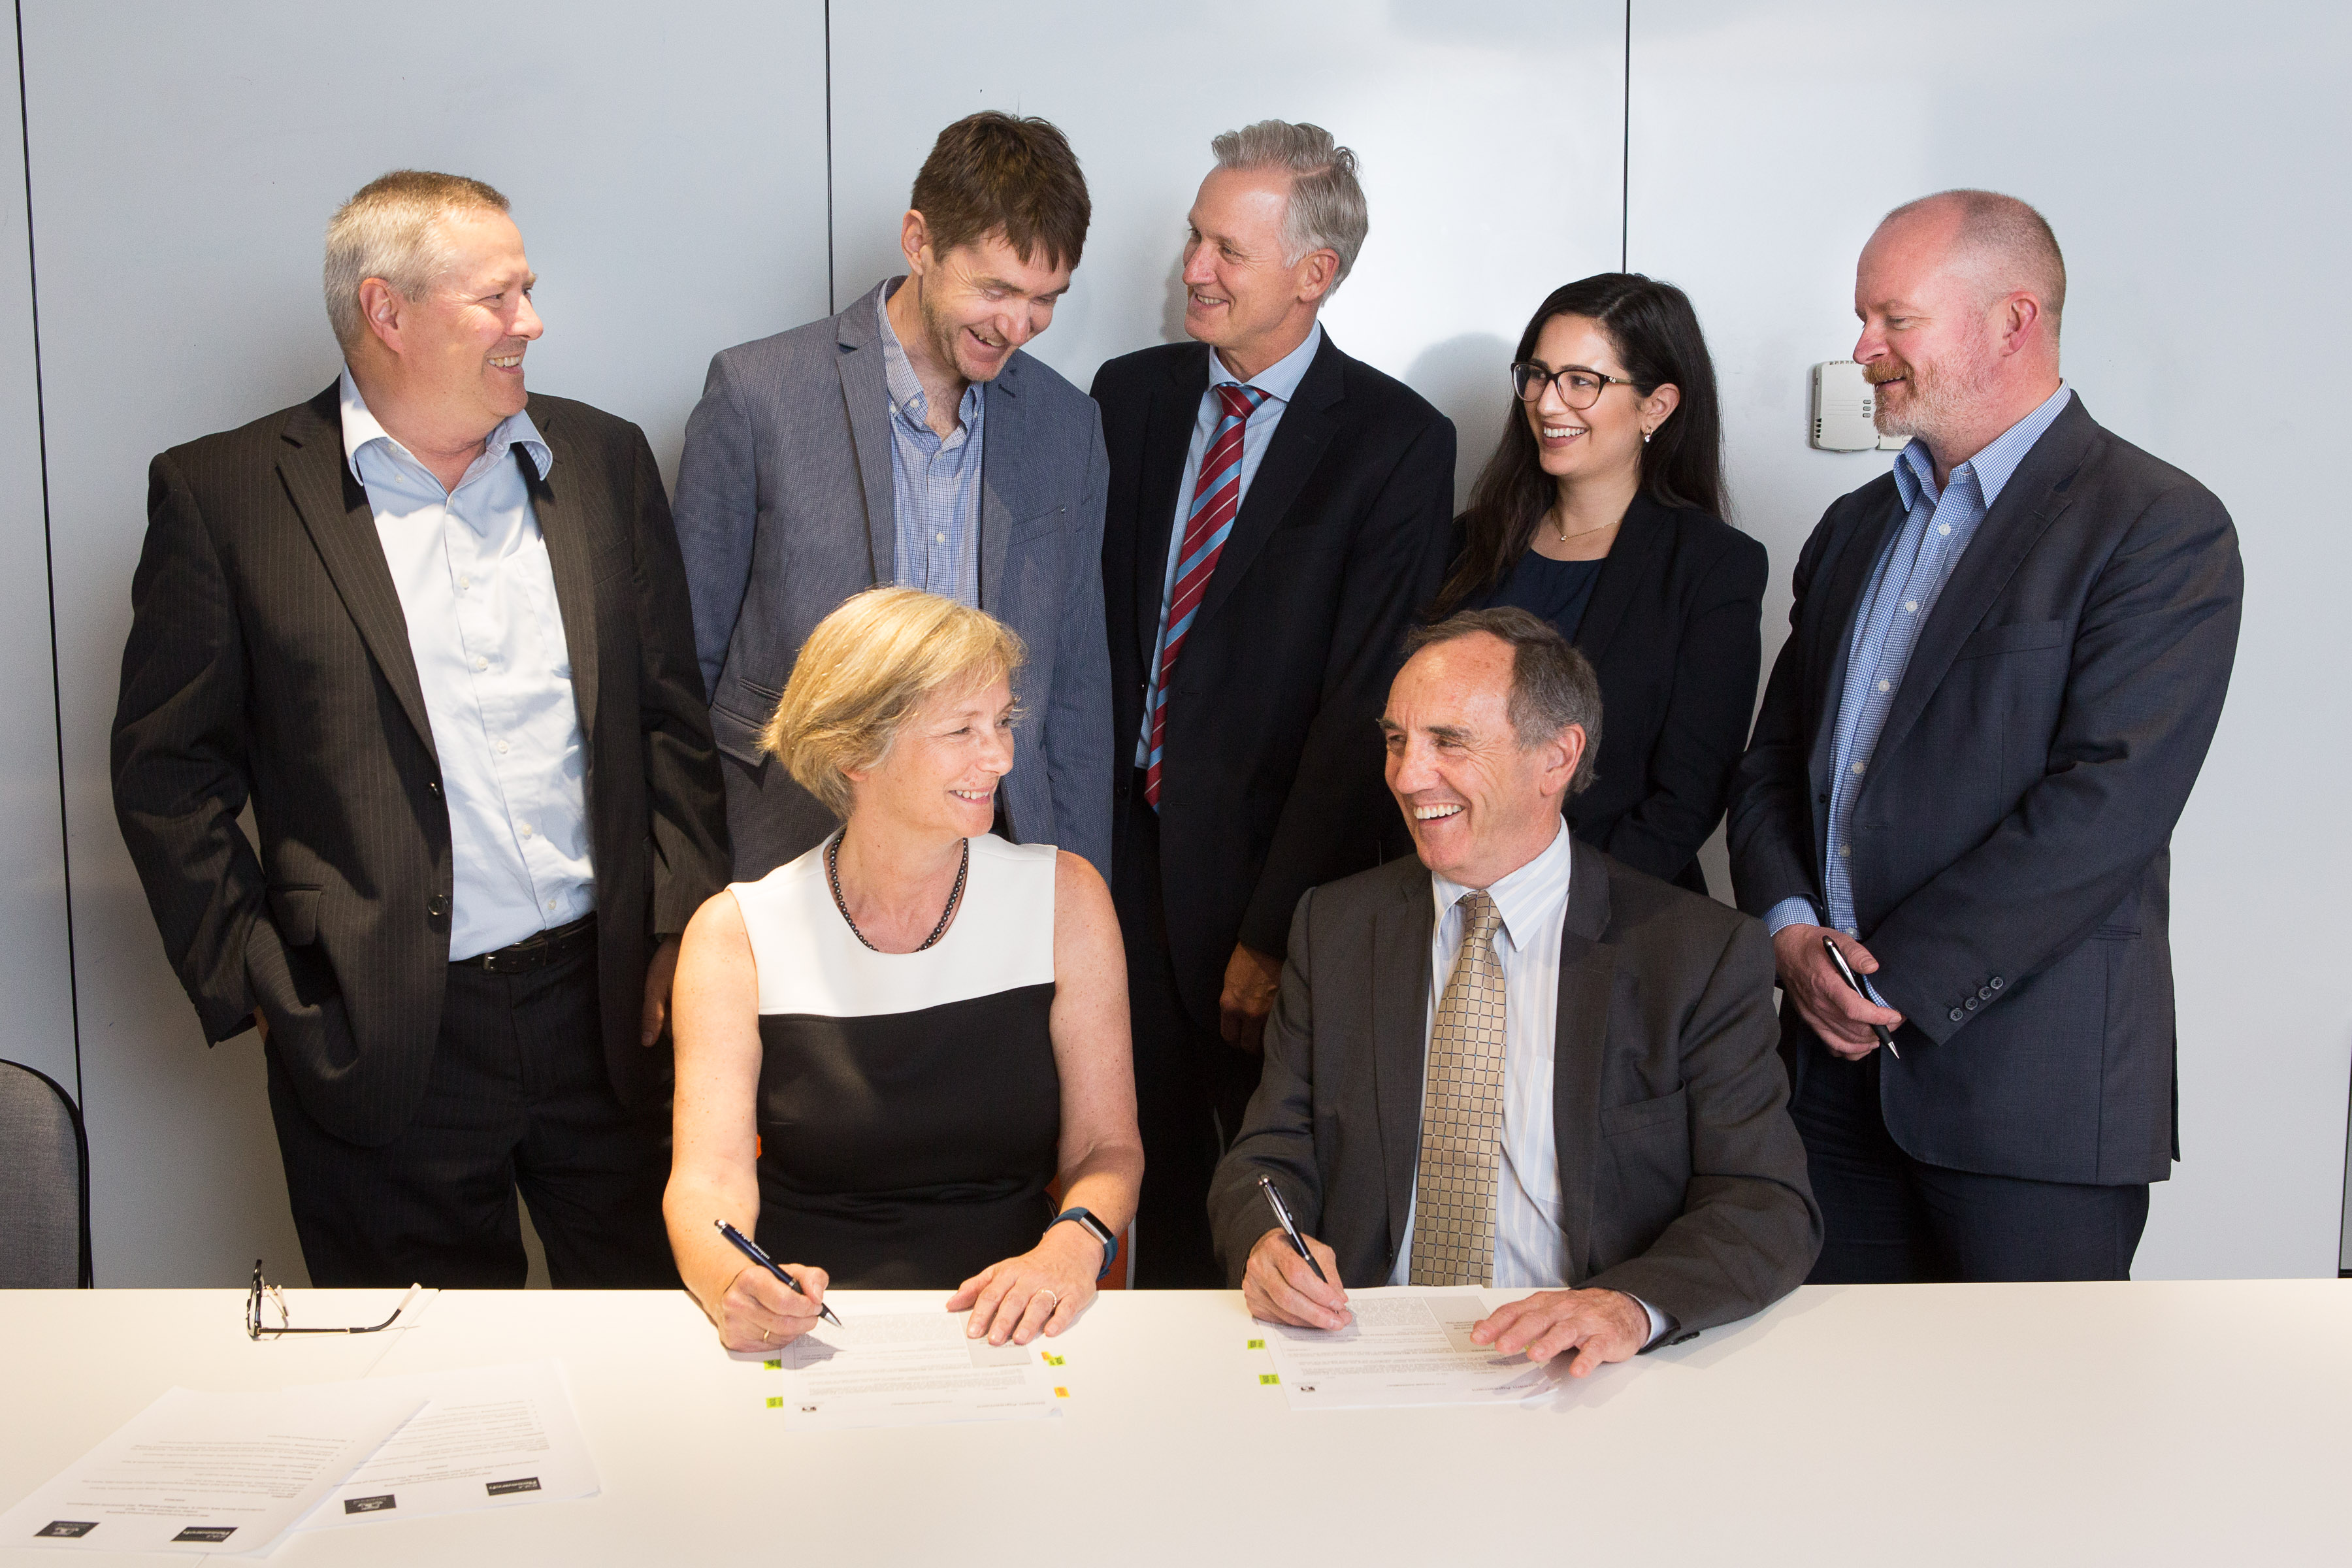 Official Agreement Signing Photo